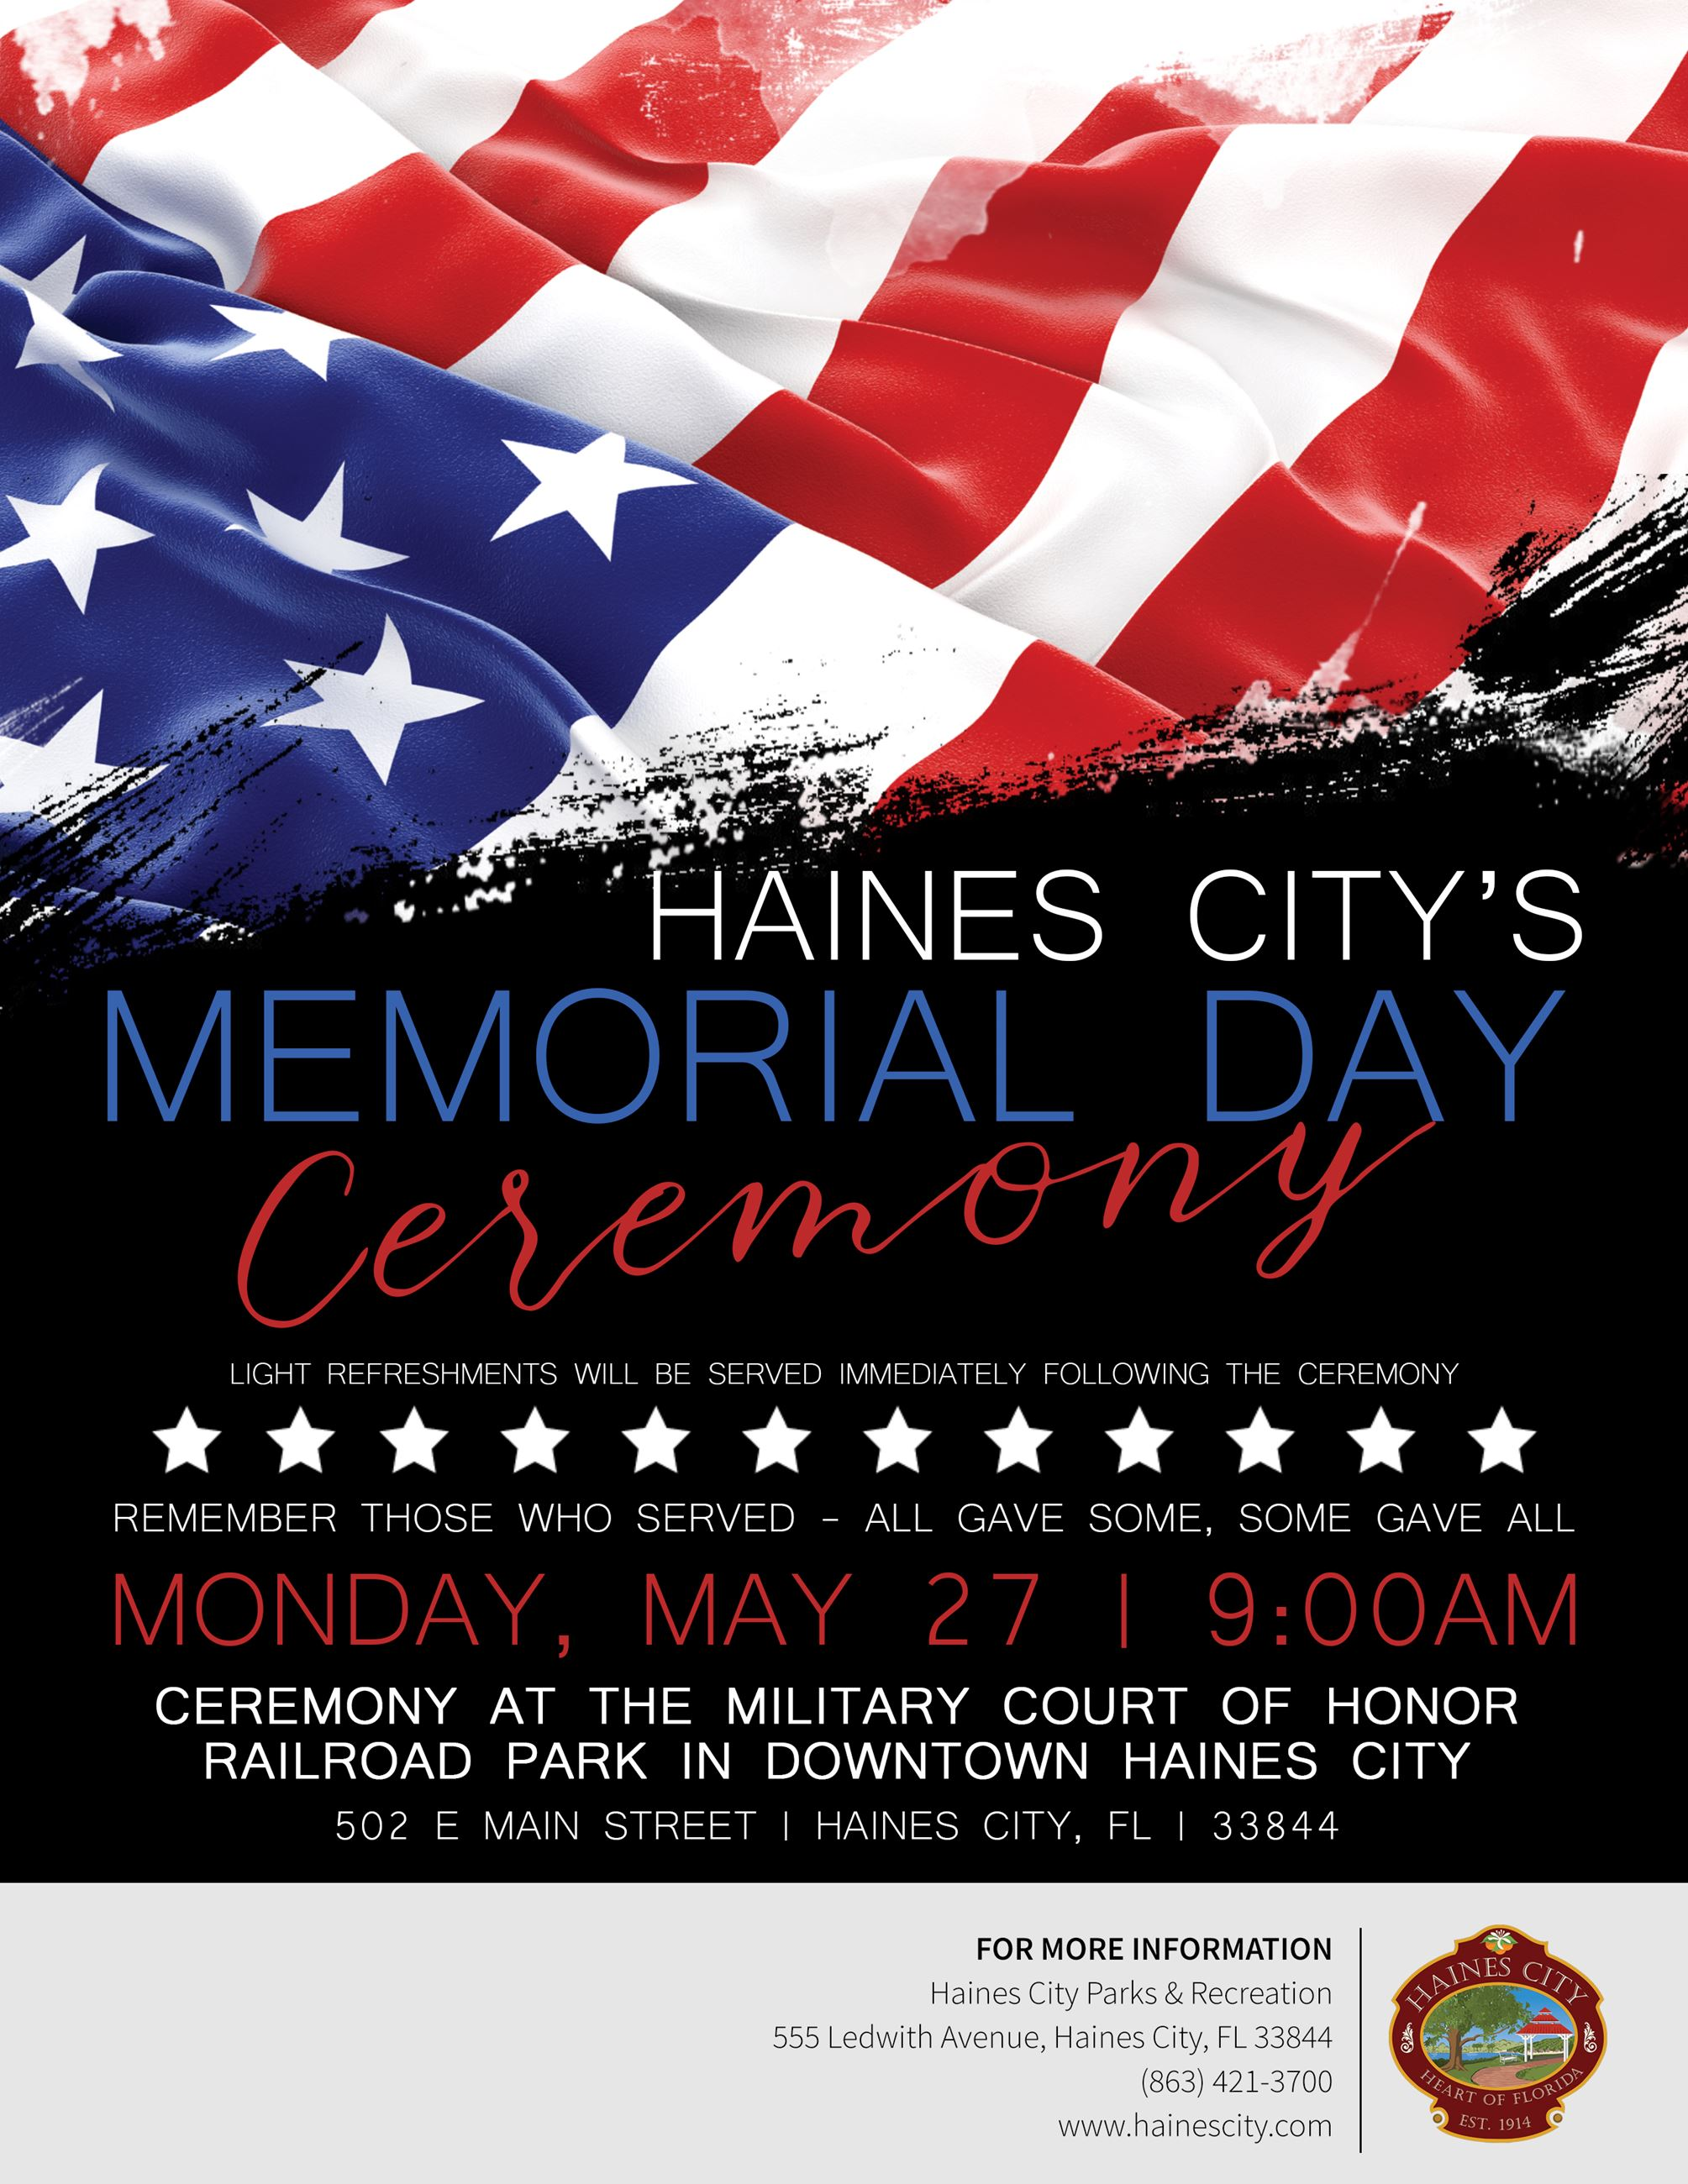 Haine's City Memorial Day Ceremony.  Monday, May 27, 9:00 PM at Railroad Park